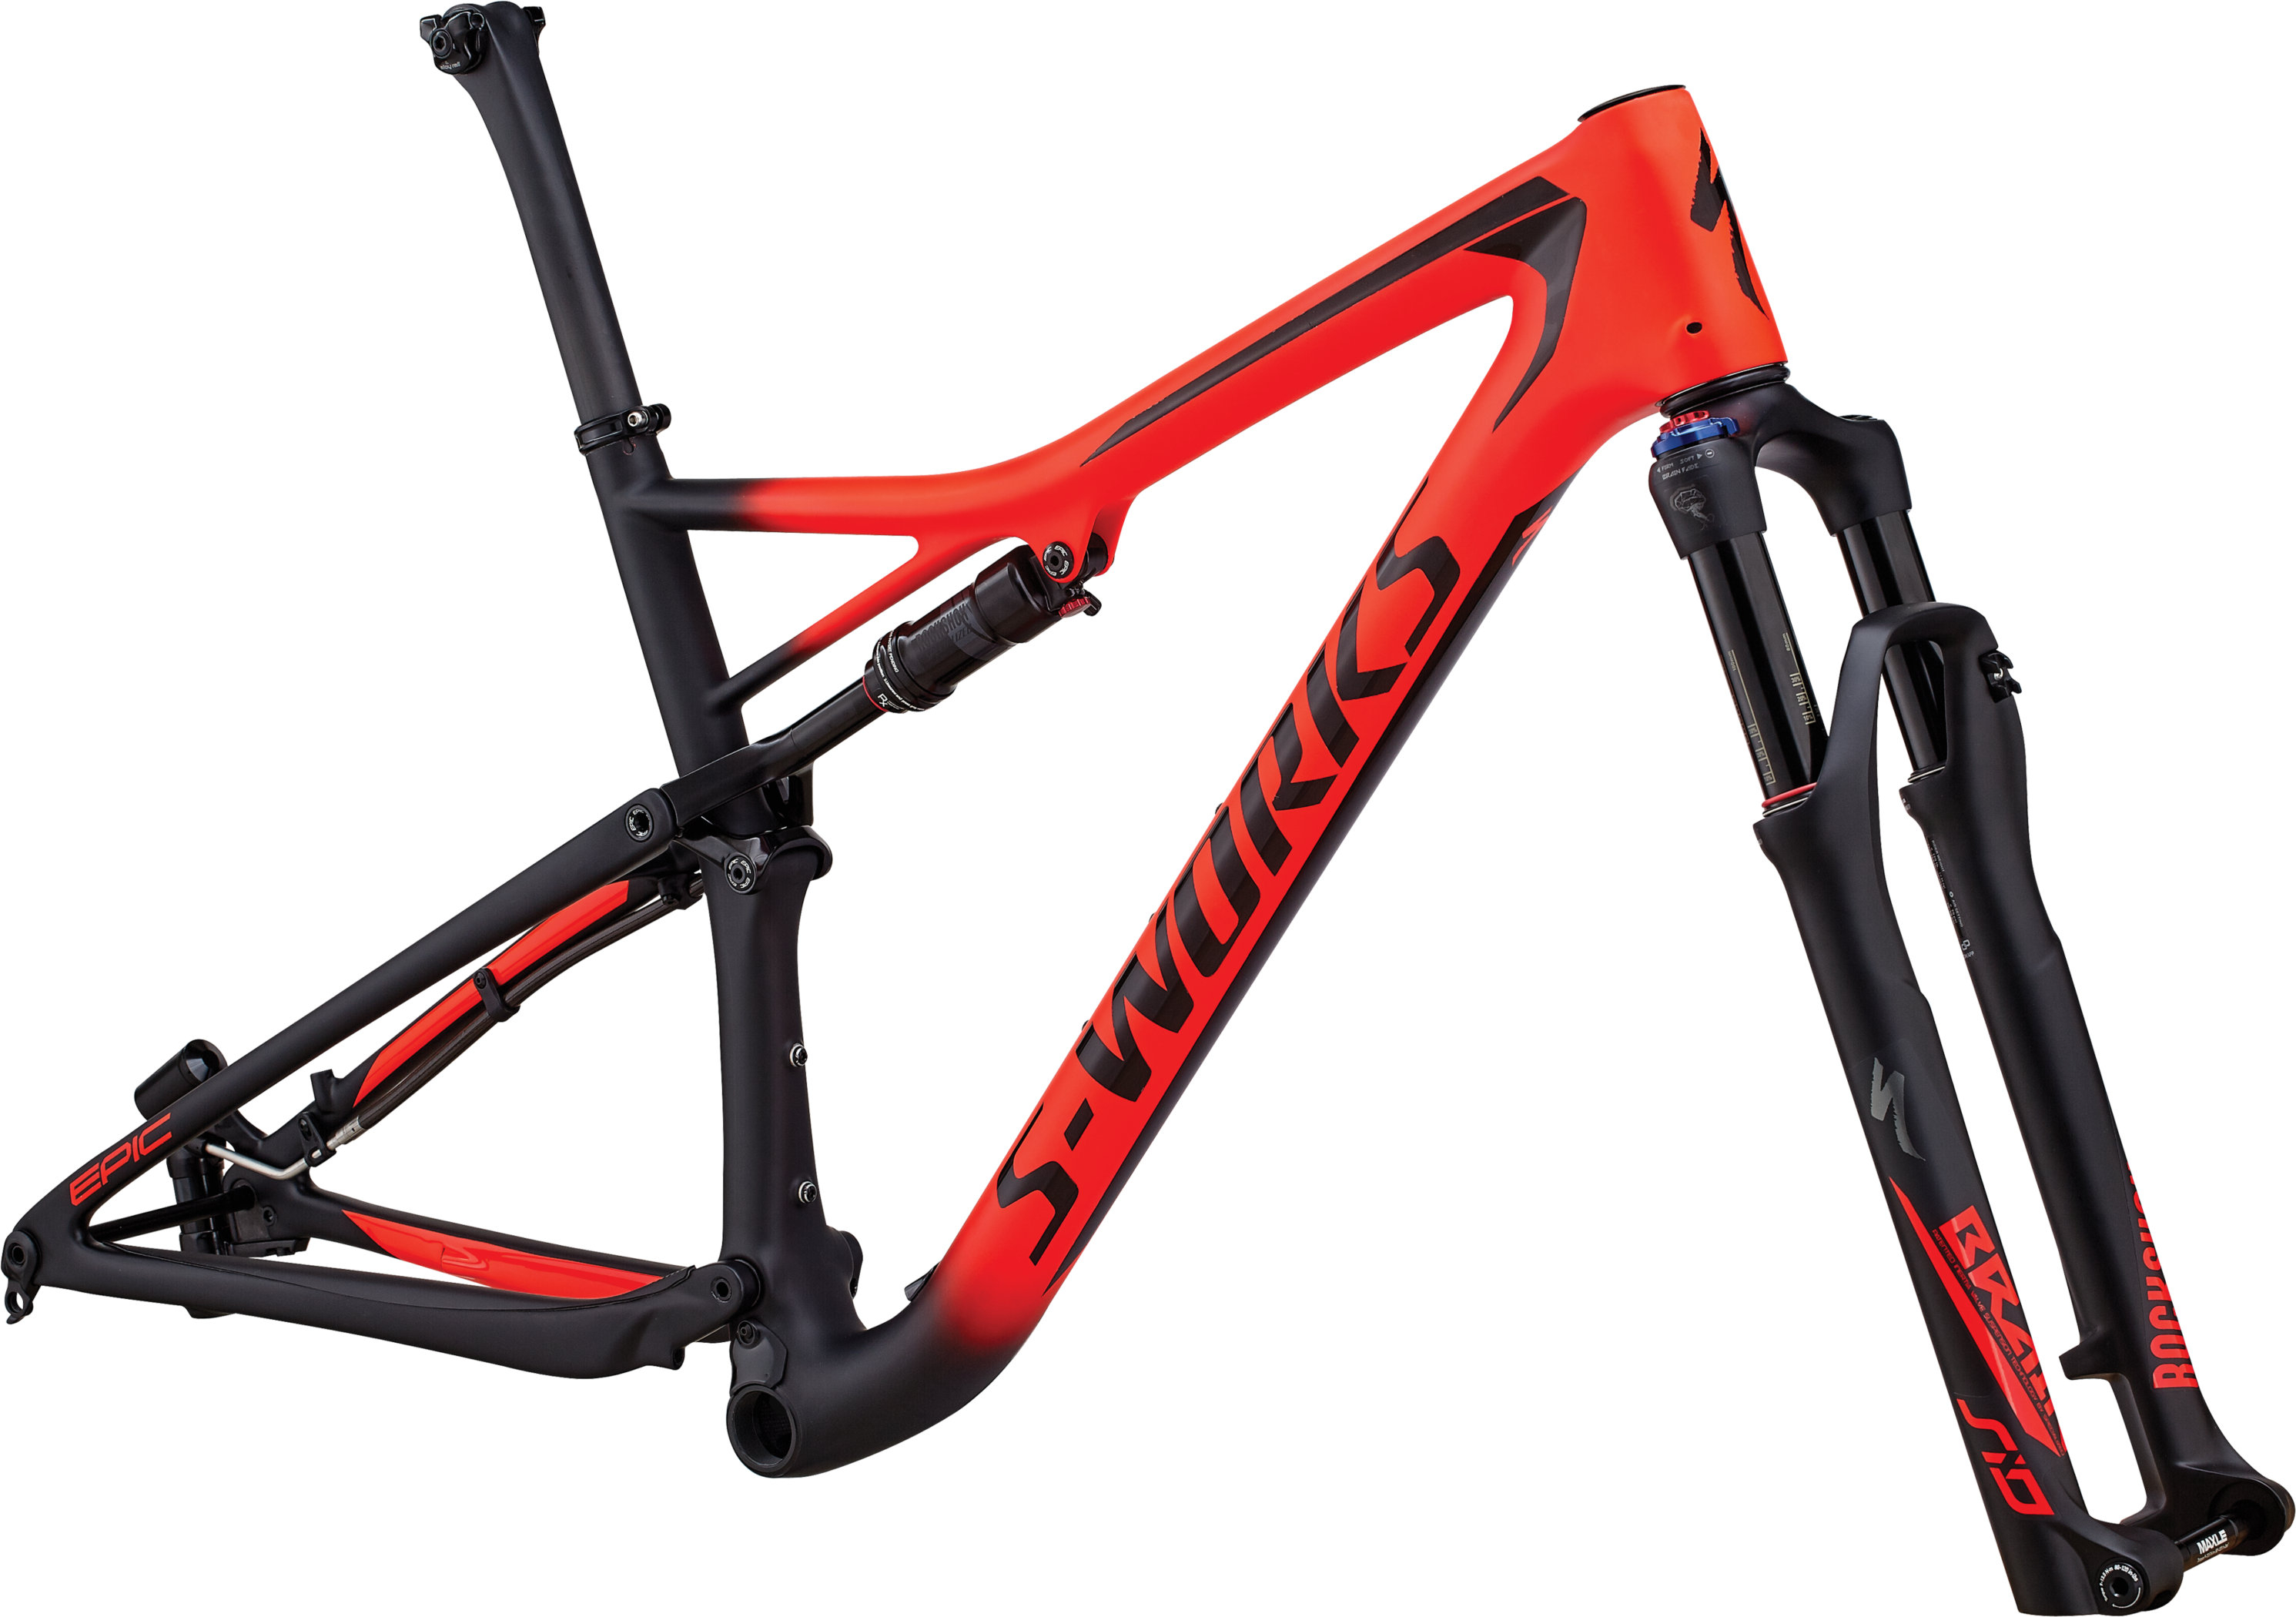 5850303e1ee 2018 Specialized Men's S-Works Epic Frameset - Specialized Concept Store